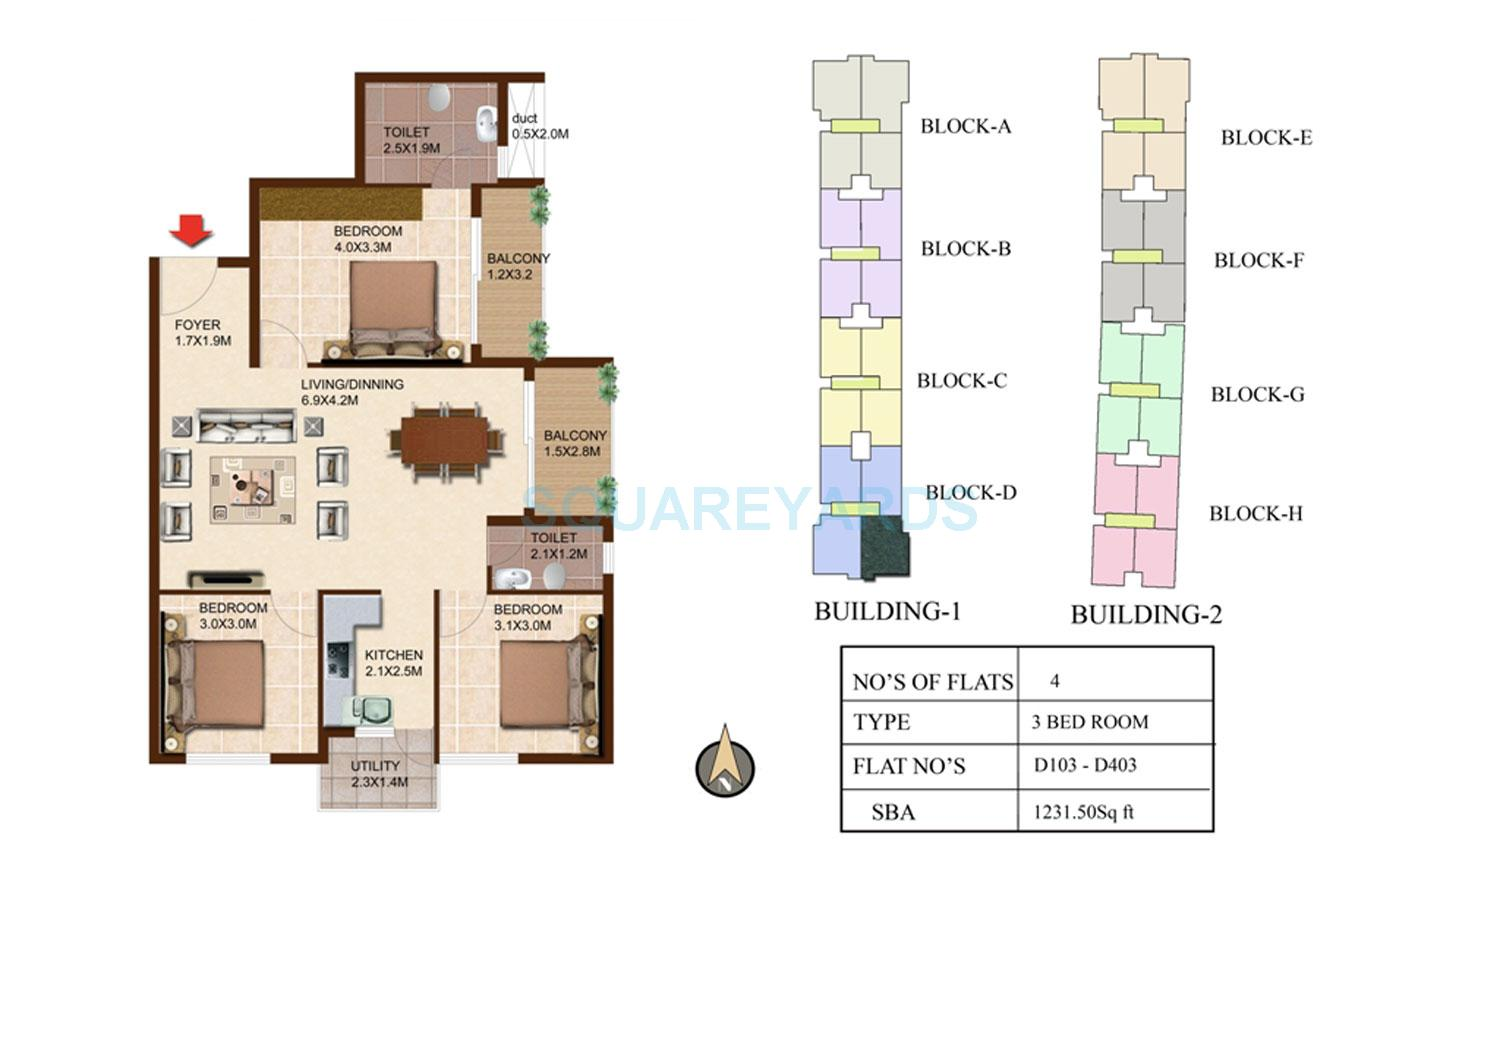 concorde south scape apartment 3bhk 1231sqft1